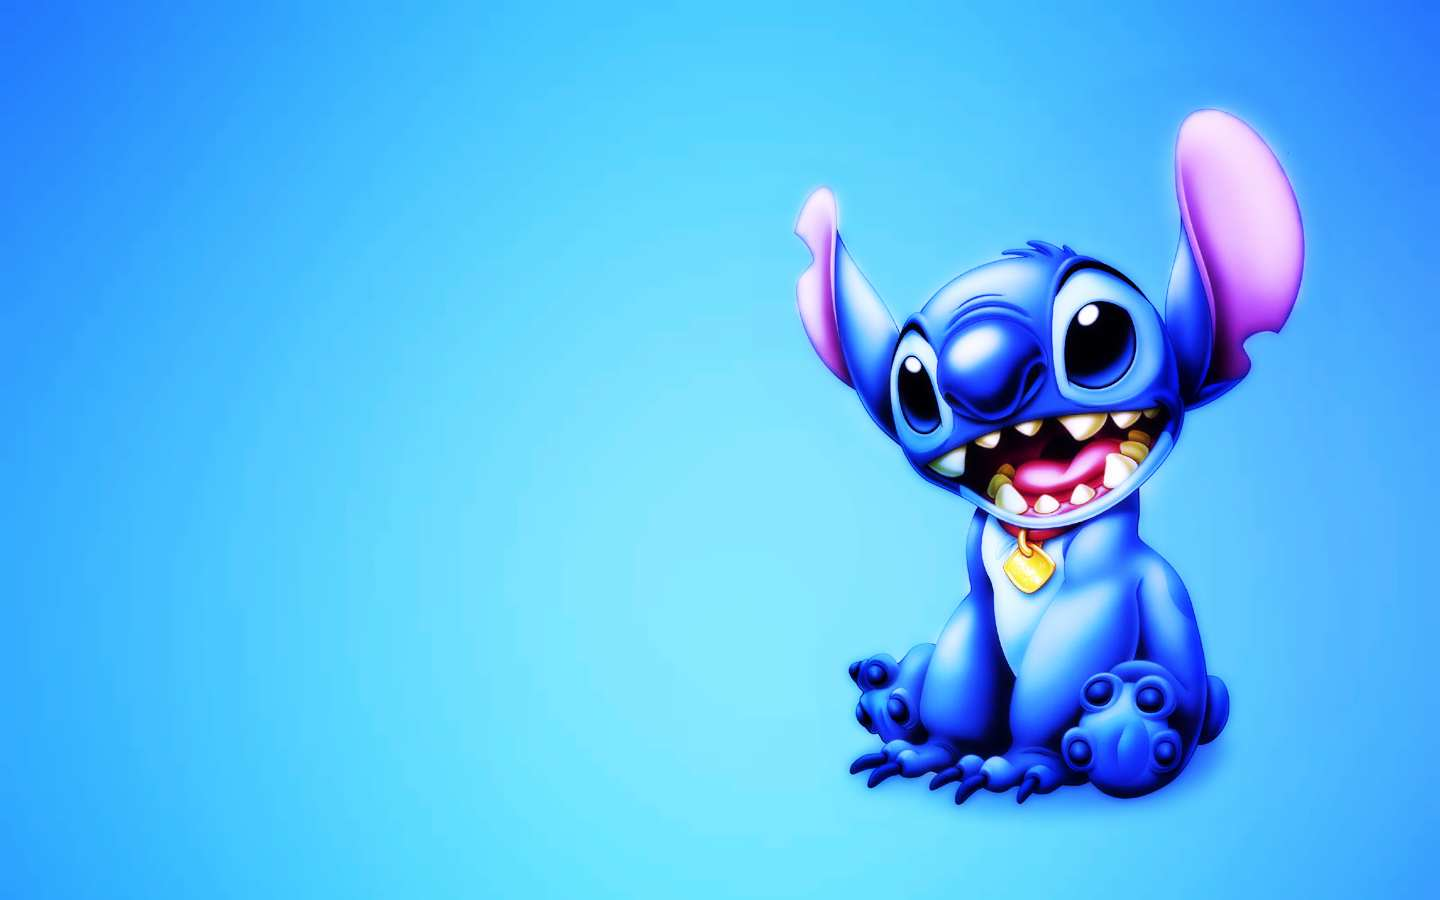 Stitch Computer Wallpapers - Wallpaper Cave